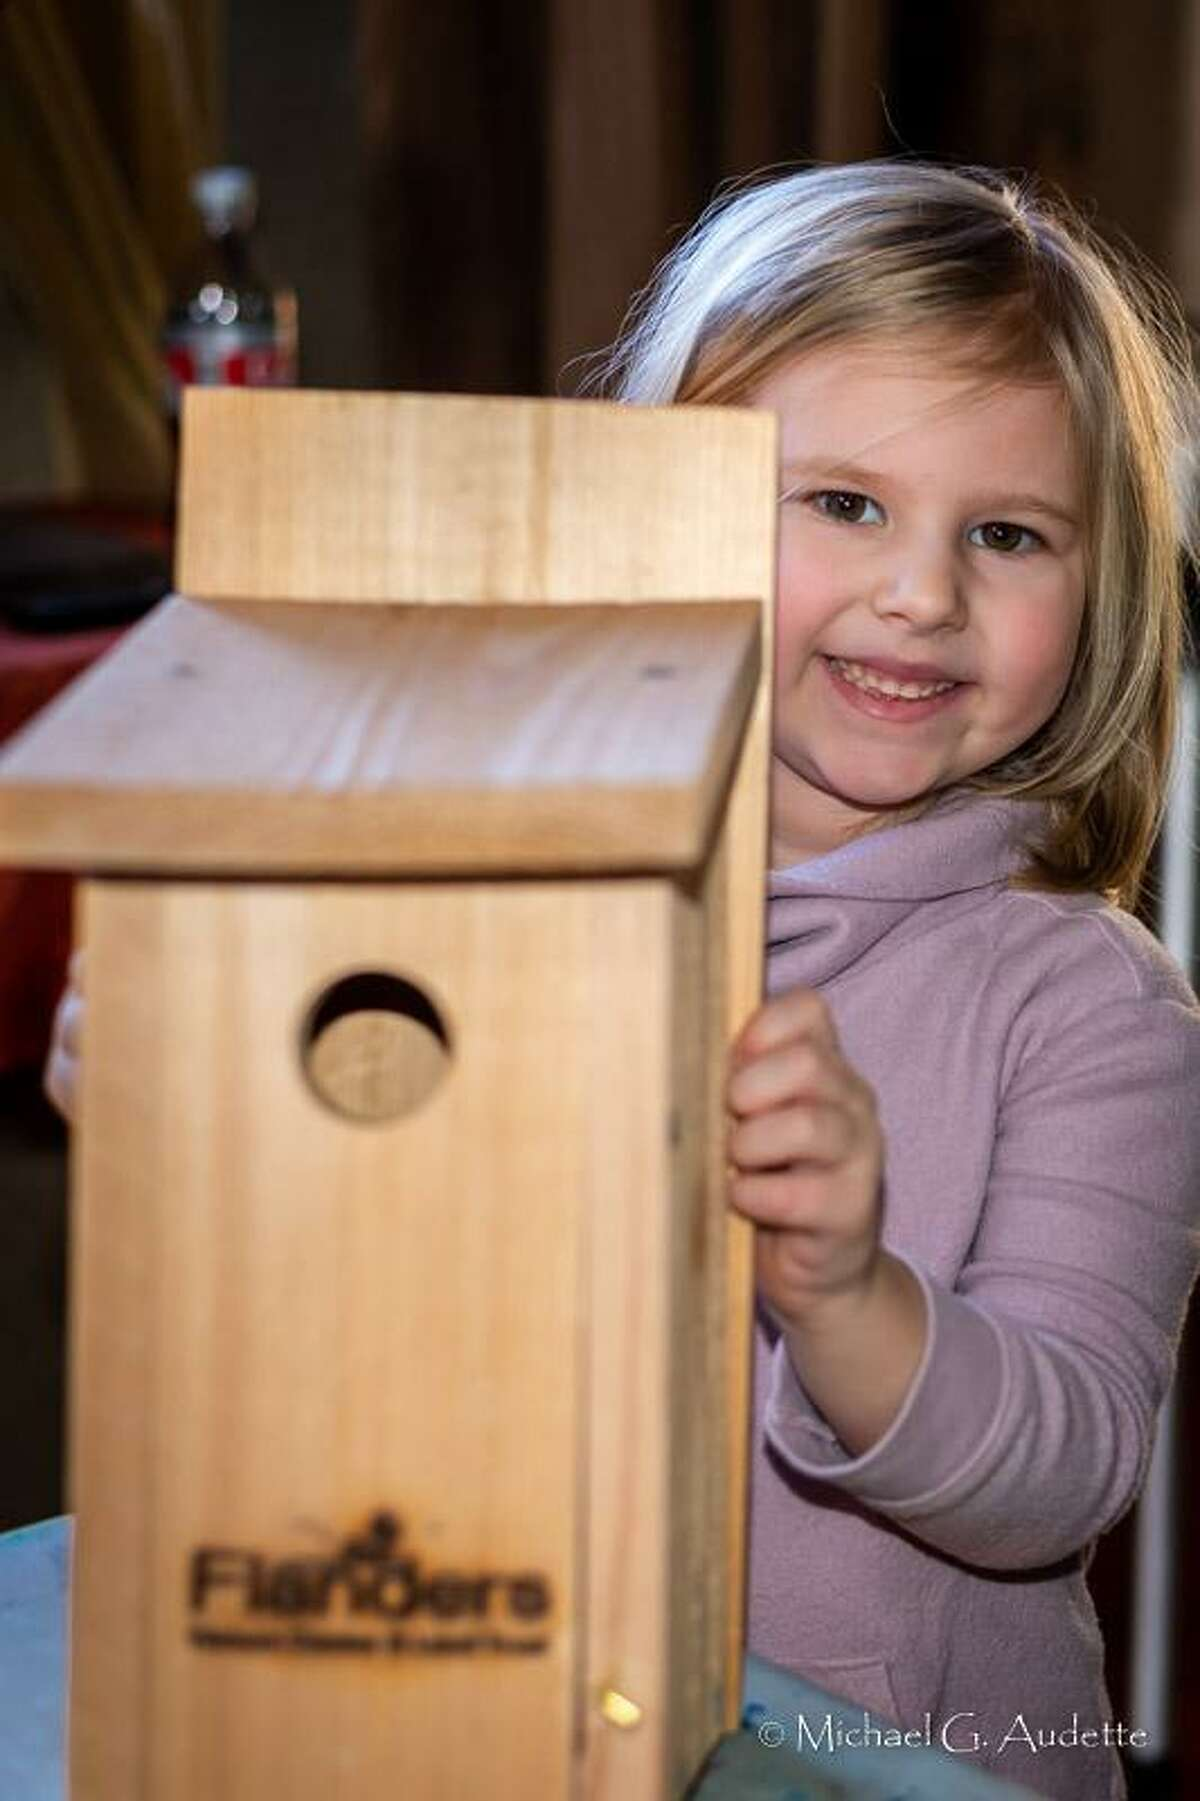 Flanders Nature Center is holding two bluebird nest box building programs this year on Feb. 15 and Feb. 29. Above, Emma Stirk shows her completed bluebird nesting box after a workshop at the nature center in Woodbury.